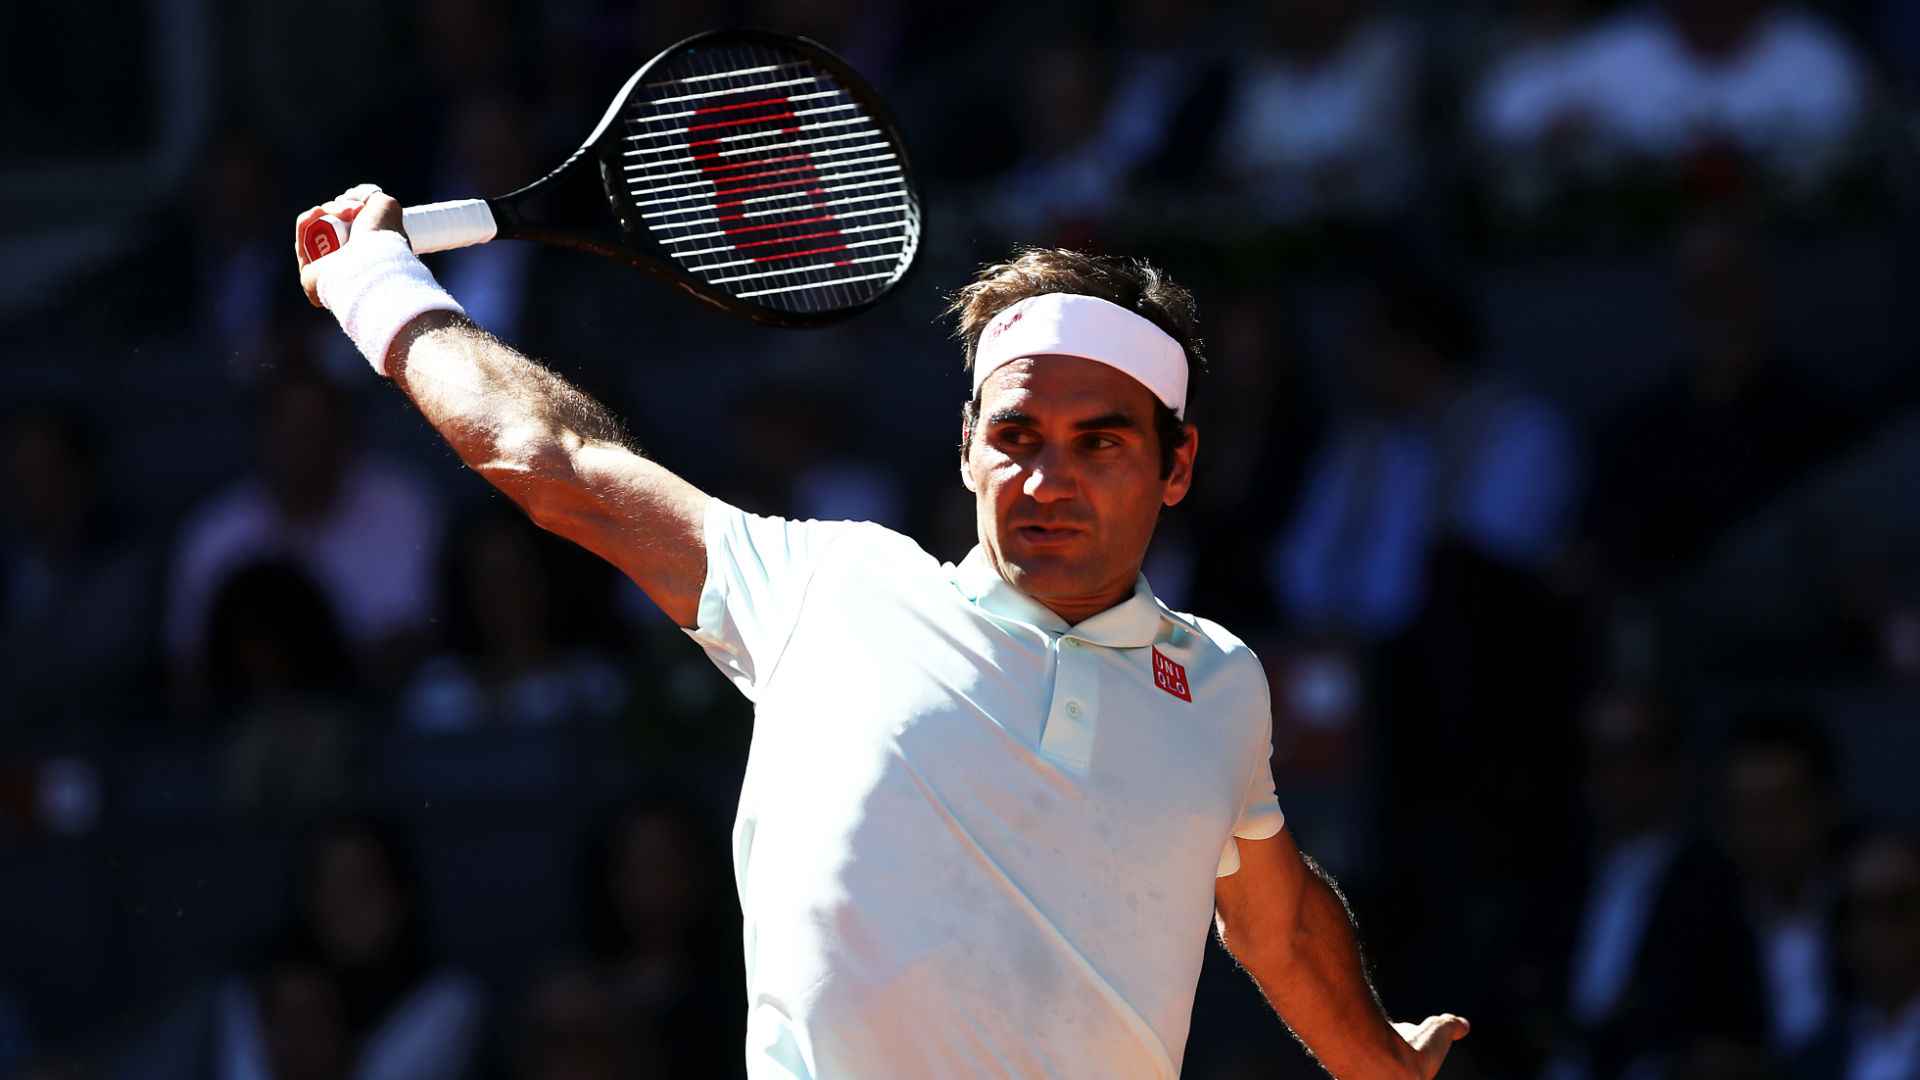 French Open 2019: Unburdened Federer has a free hit on Roland Garros return